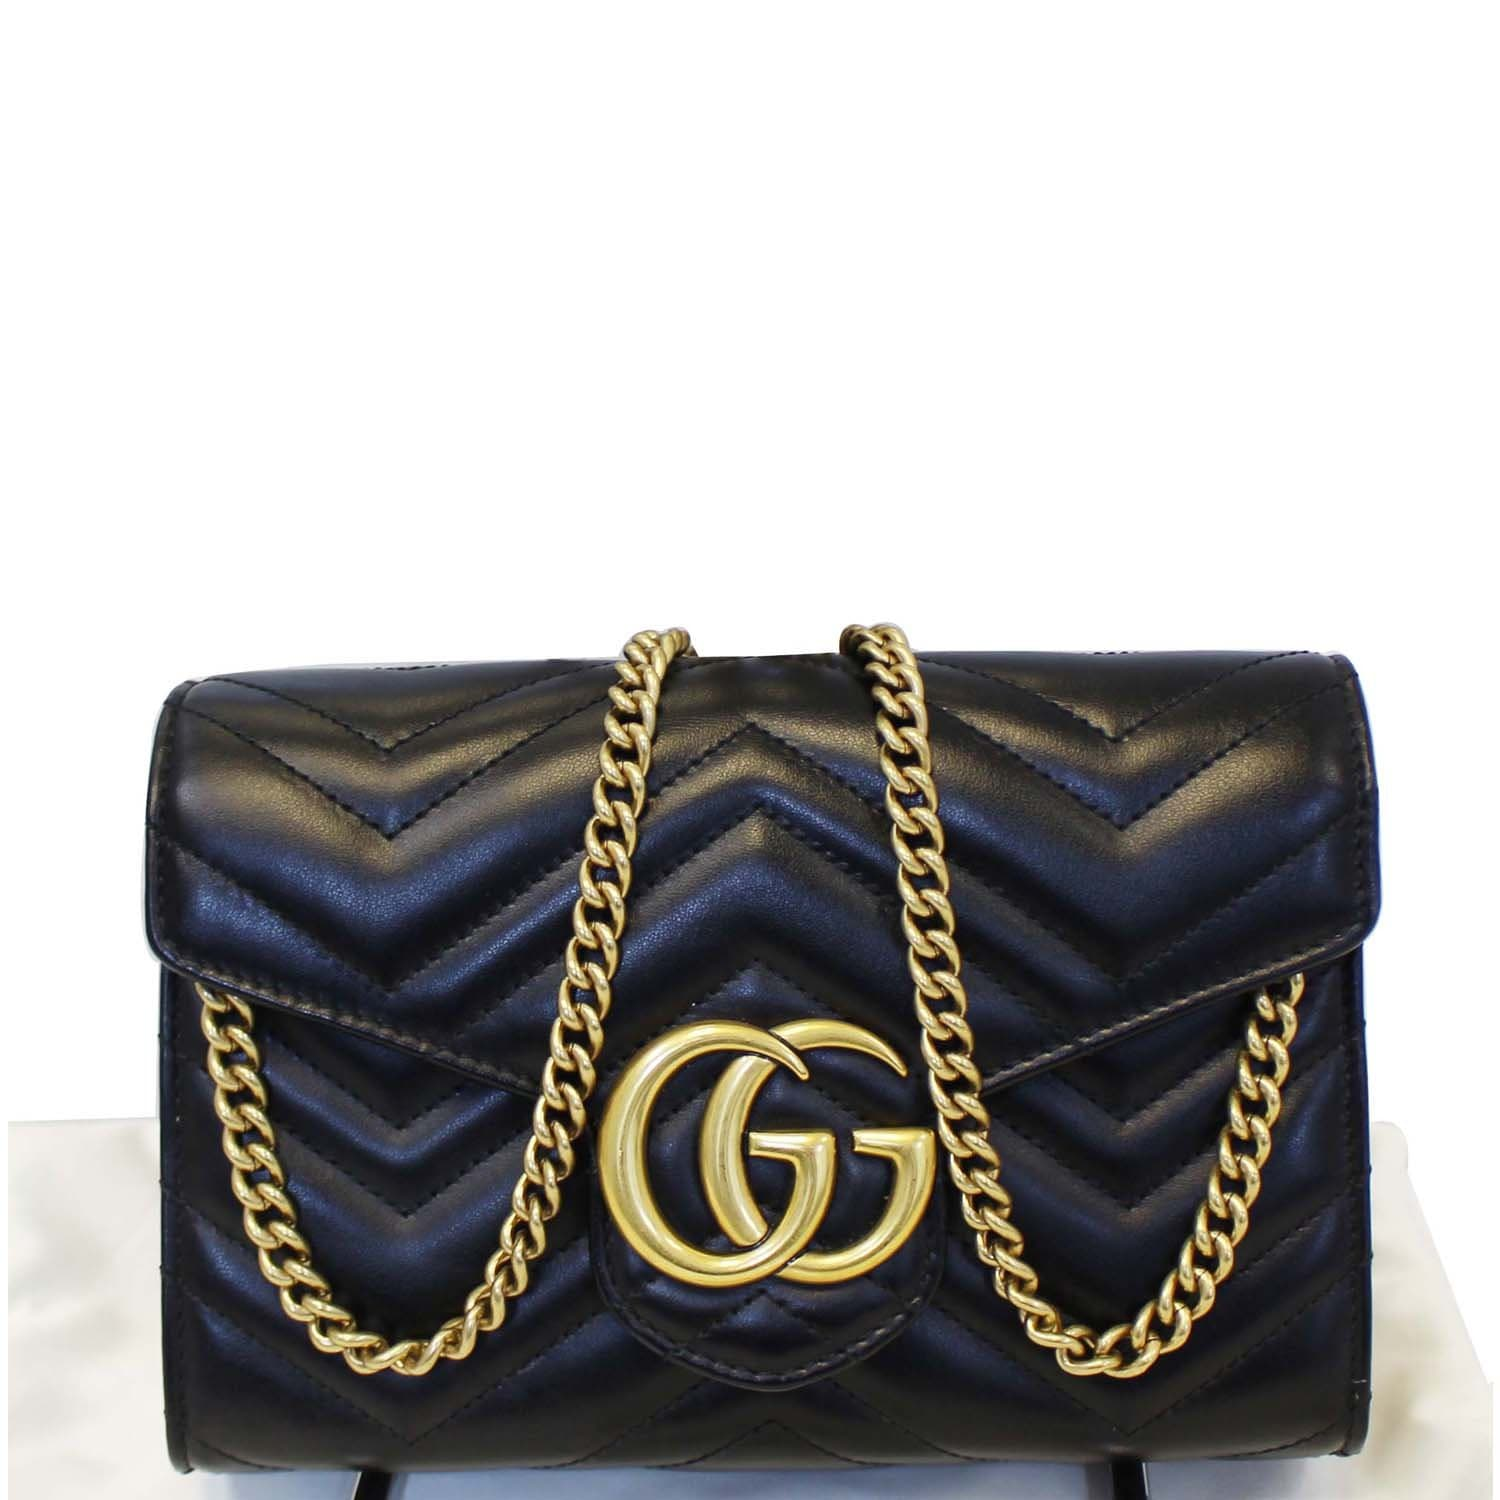 8e913cd7141 GUCCI GG Marmont Matelasse Black Leather Super Mini Crossbody Bag-US